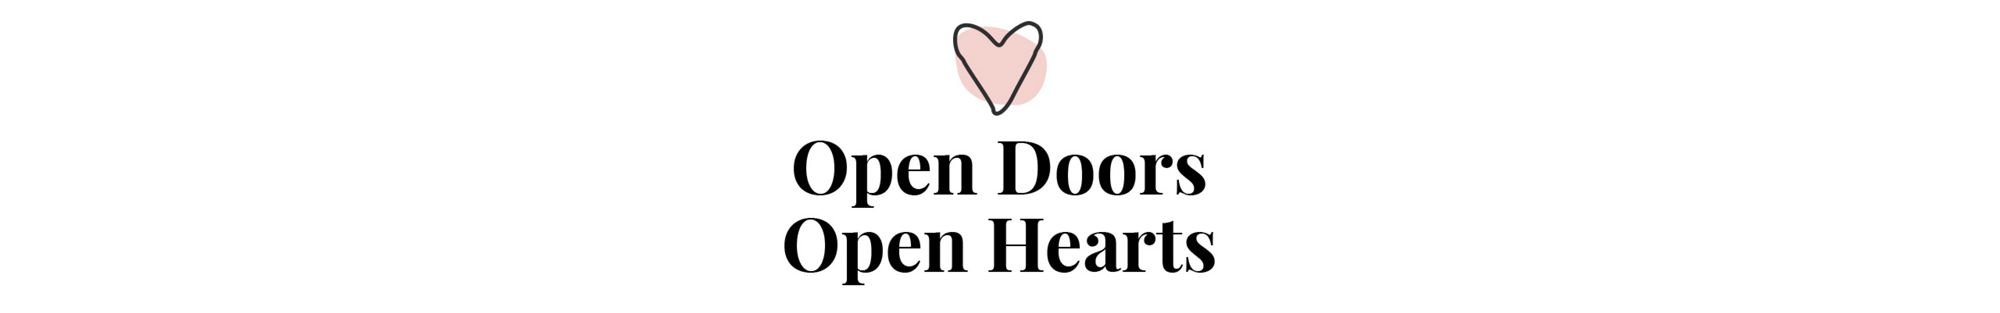 Open Doors, Open Hearts